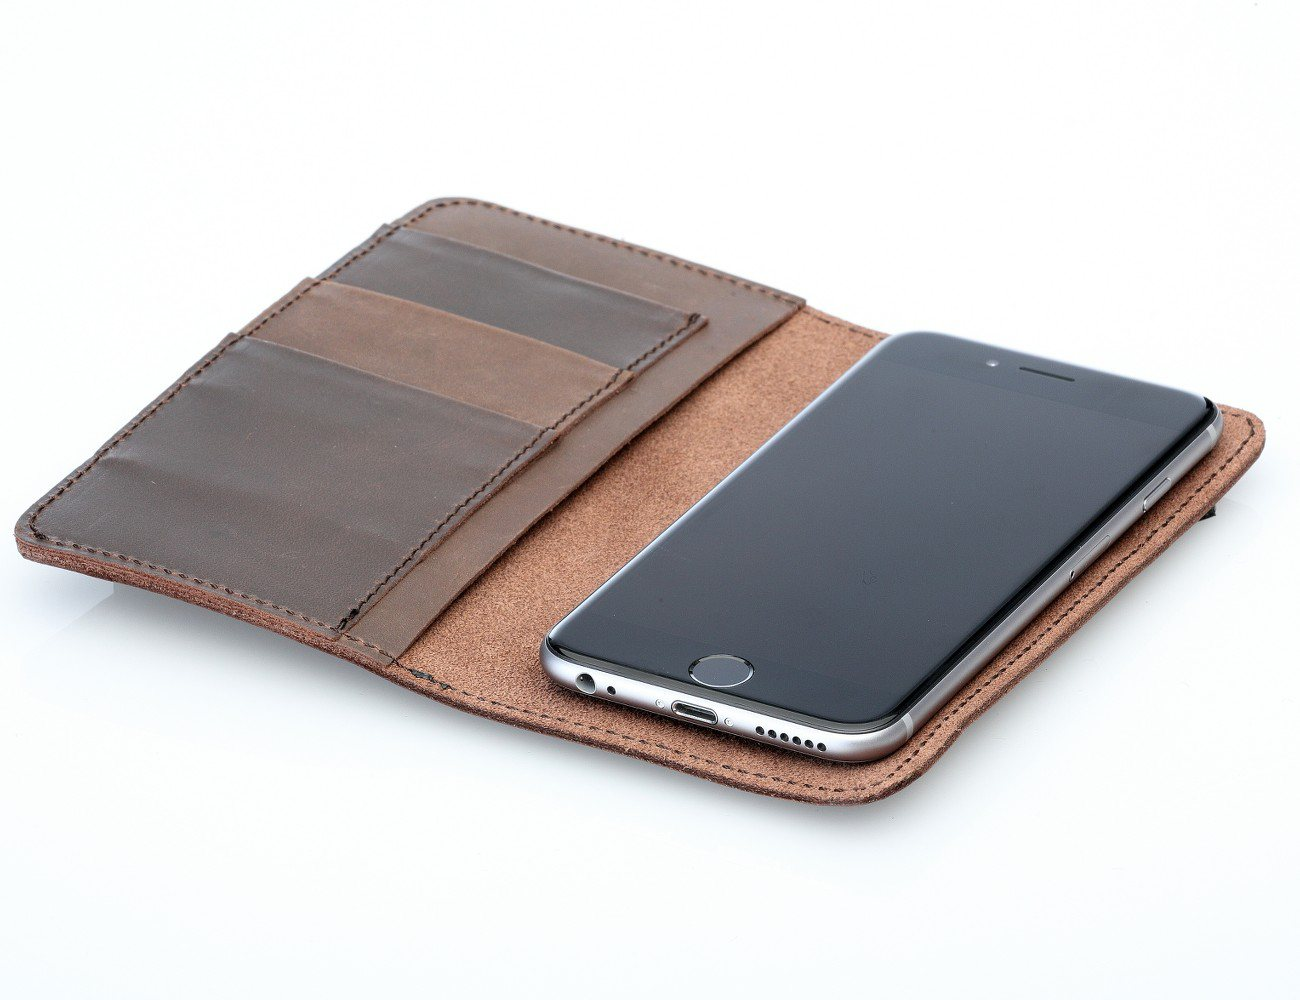 g-case-iphone-6-case-and-wallet-05